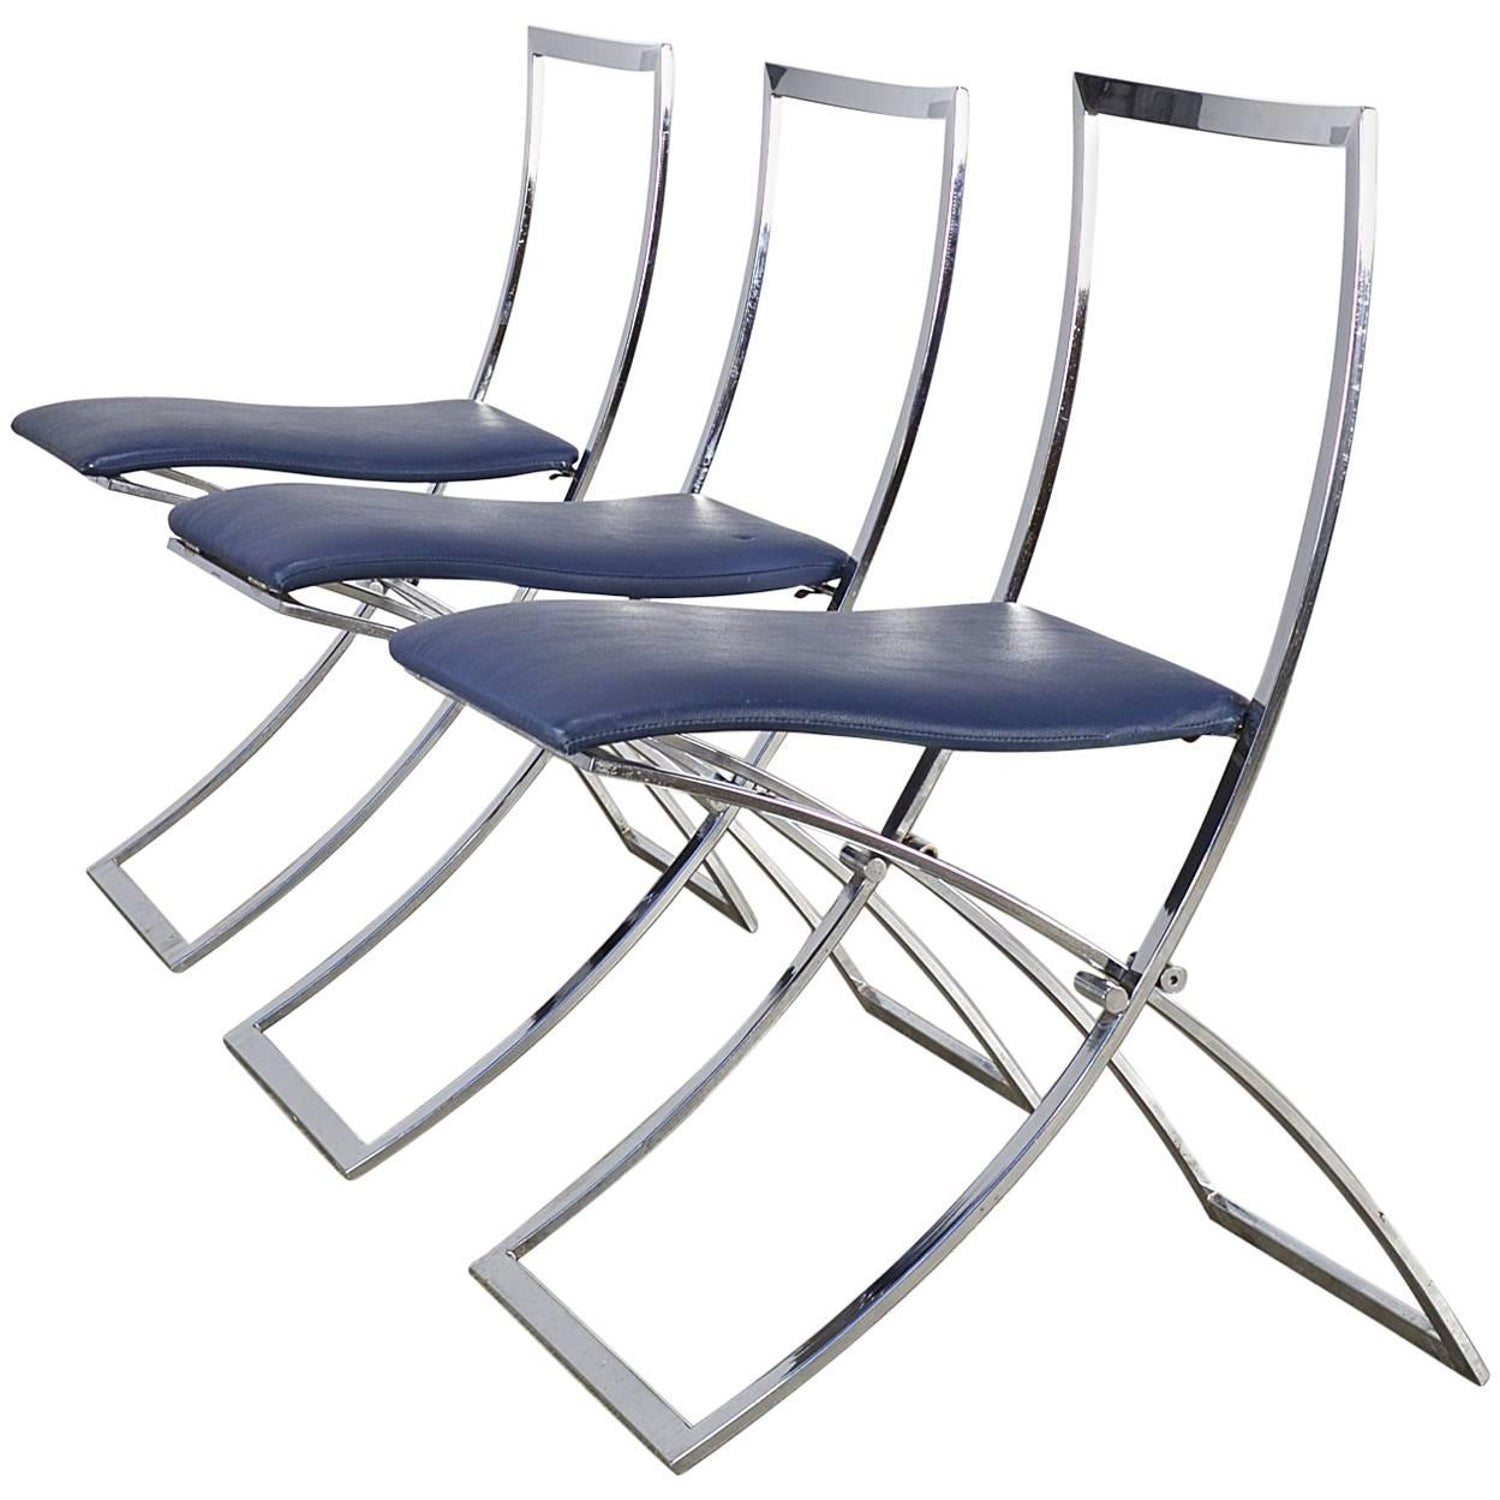 "Six Stainless Steel 1960s Folding Dining Chairs ""Luisa"" by"